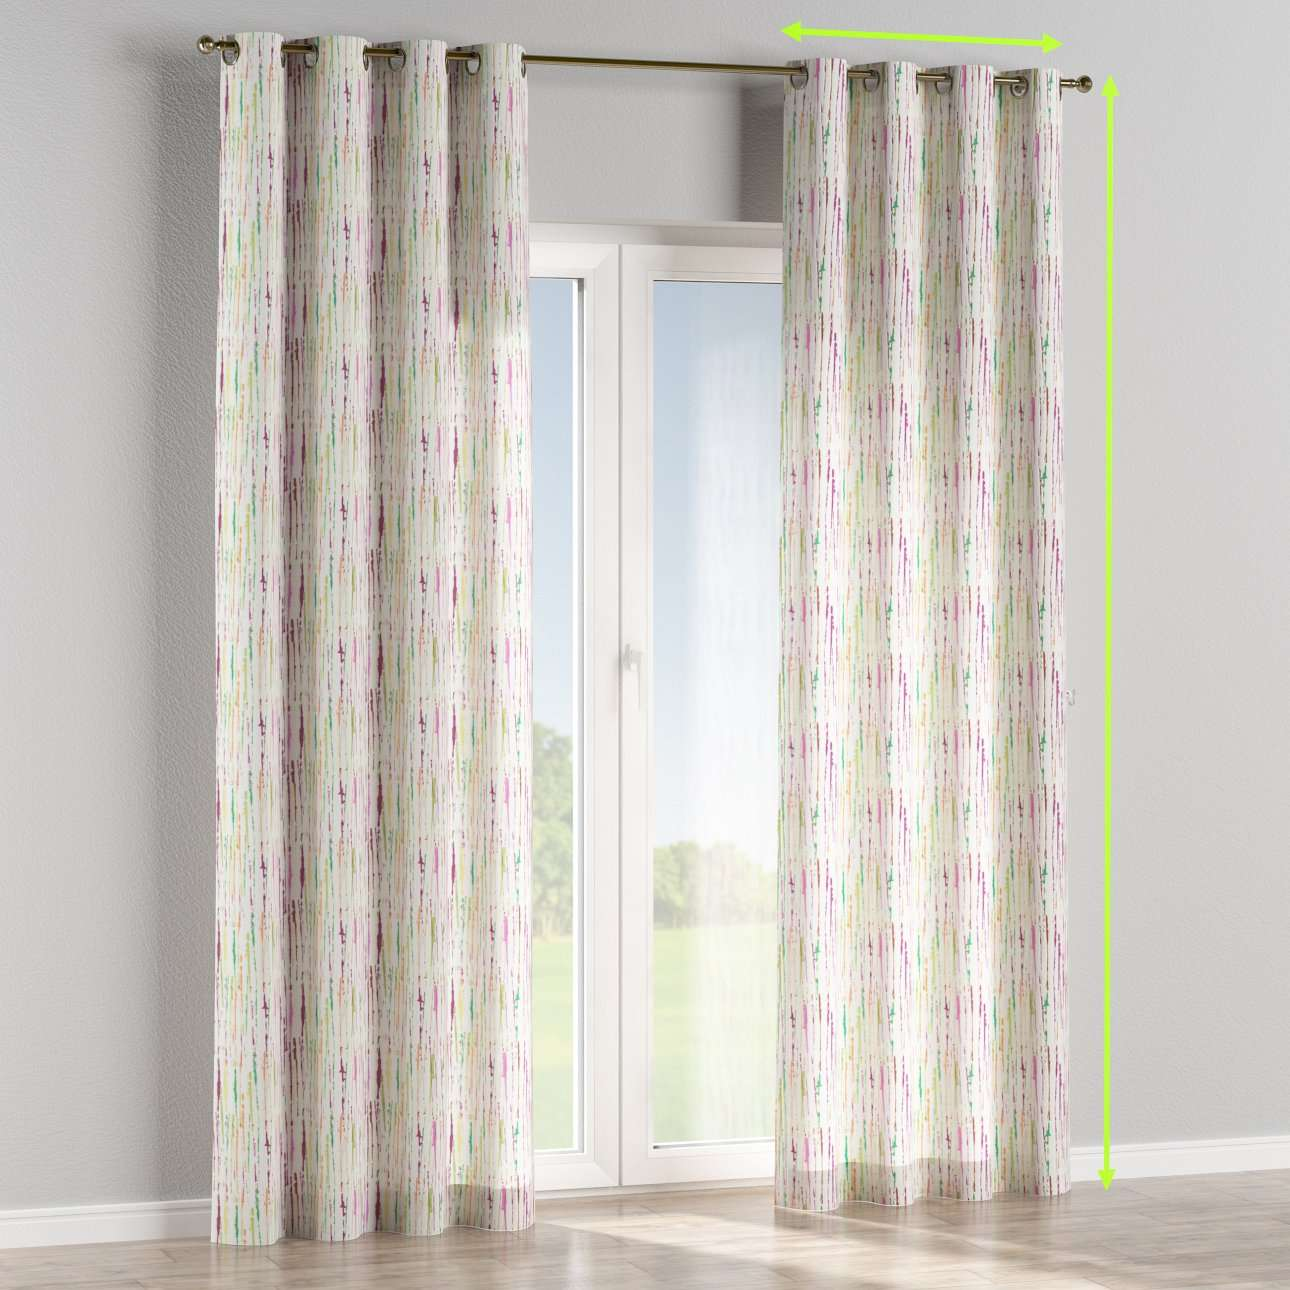 Eyelet lined curtains in collection Aquarelle, fabric: 140-72